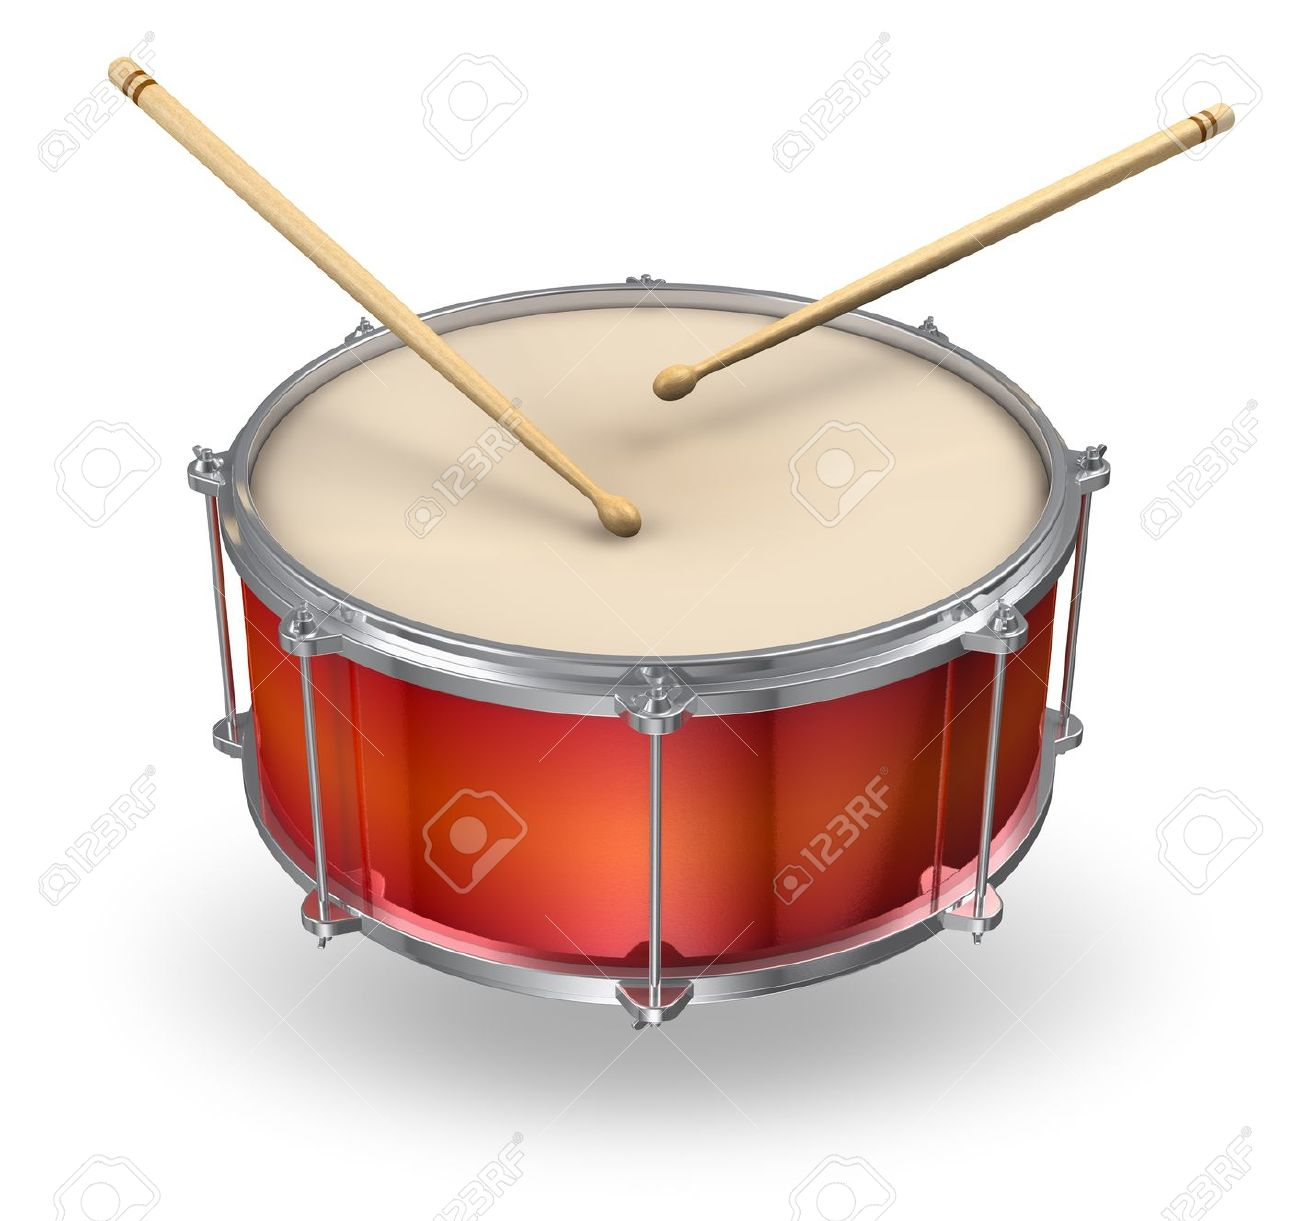 Fagot y clavicordio 14361567-Red-drum-with-pair-of-drumsticks-isolated-on-white-background-Stock-Photo